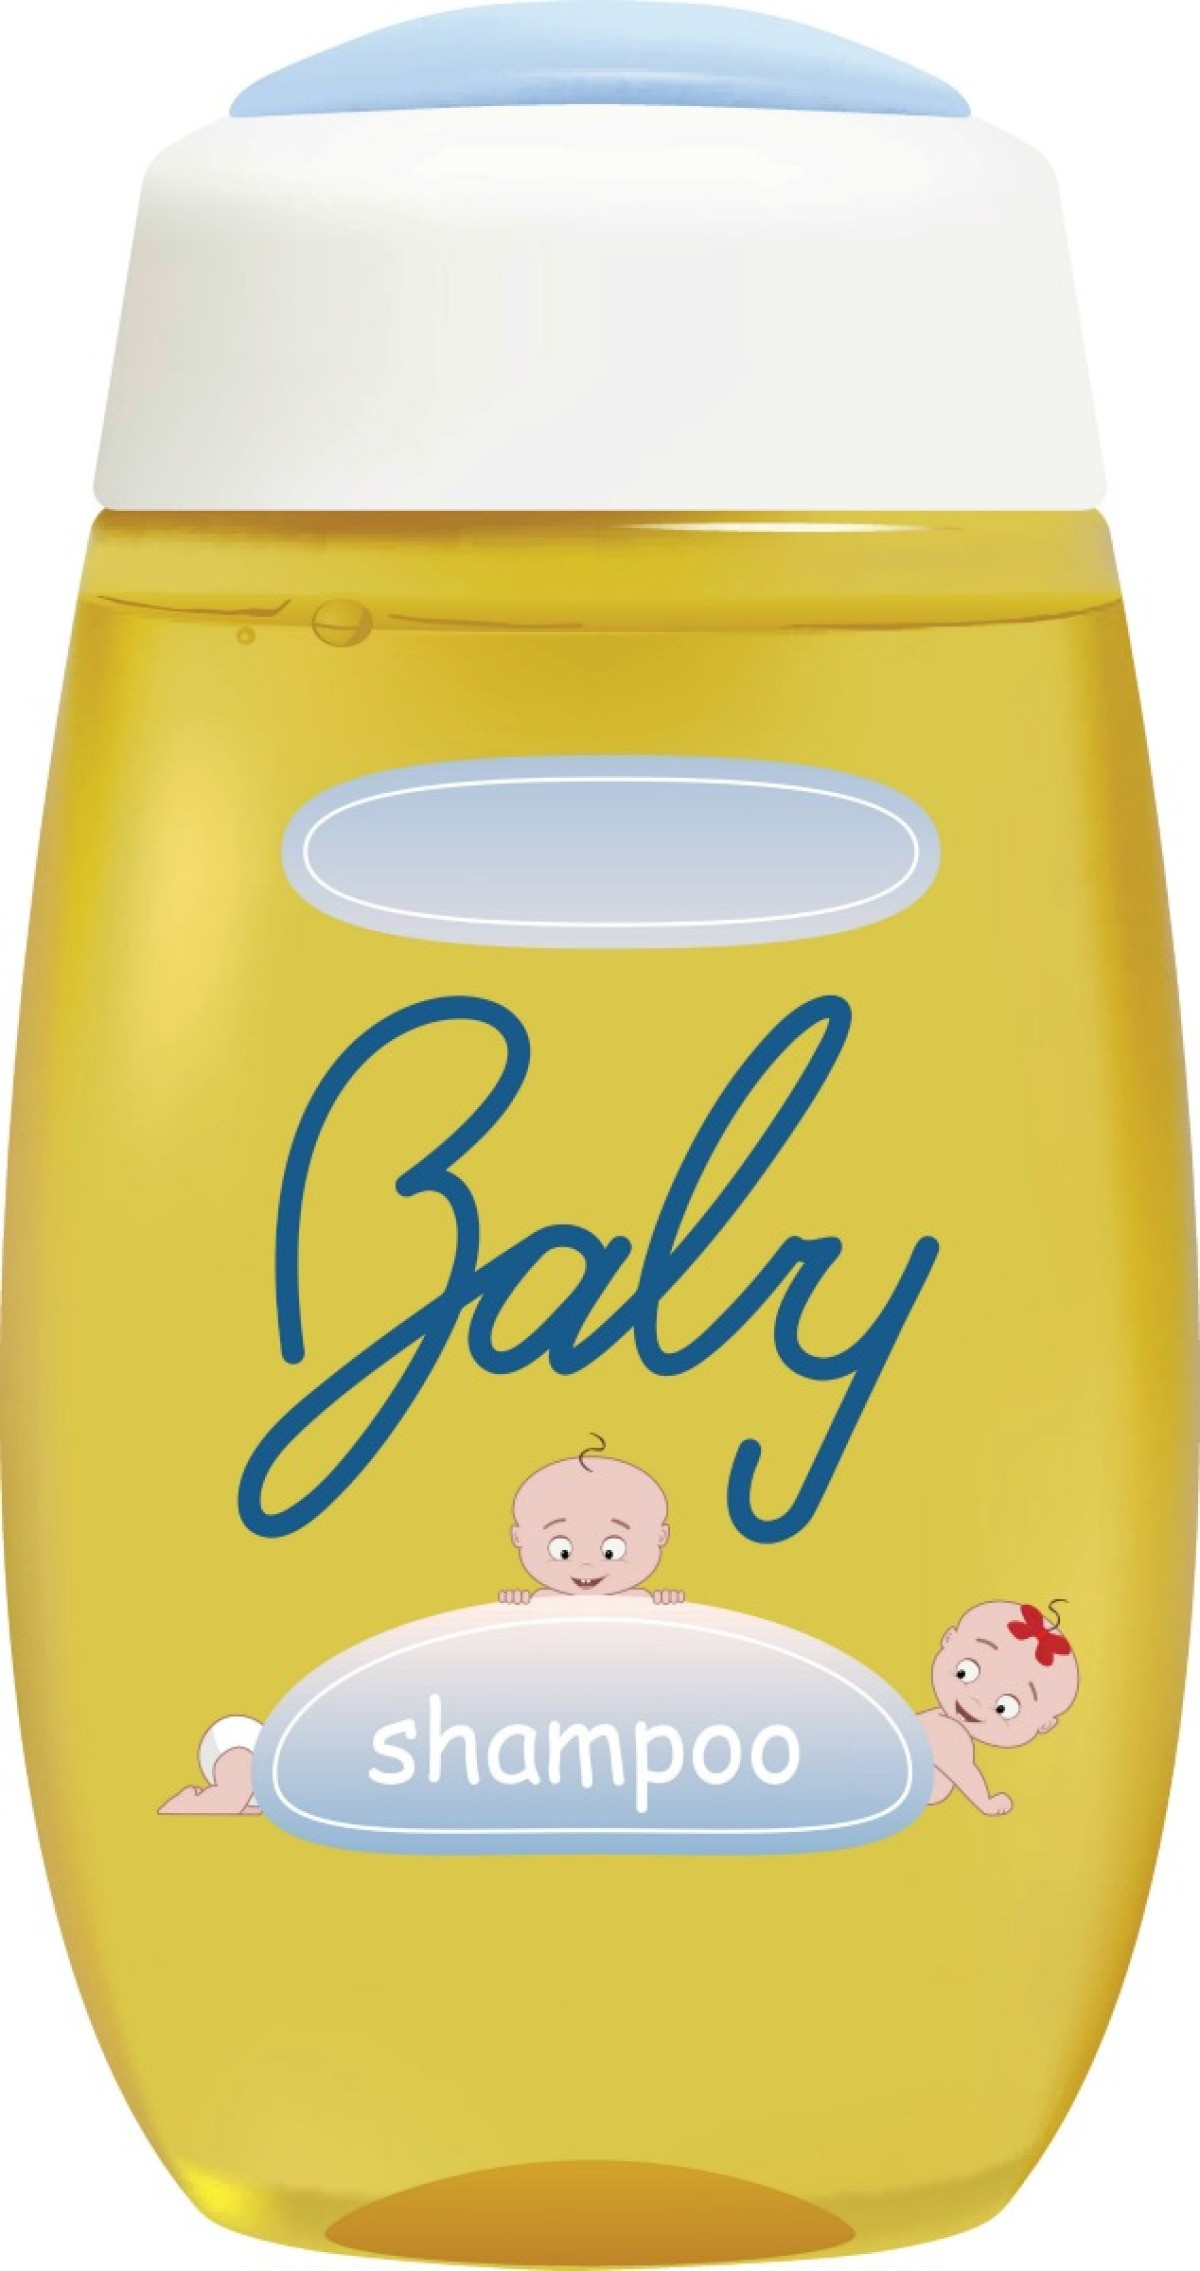 Using Baby Shampoo For Fleas Thriftyfun